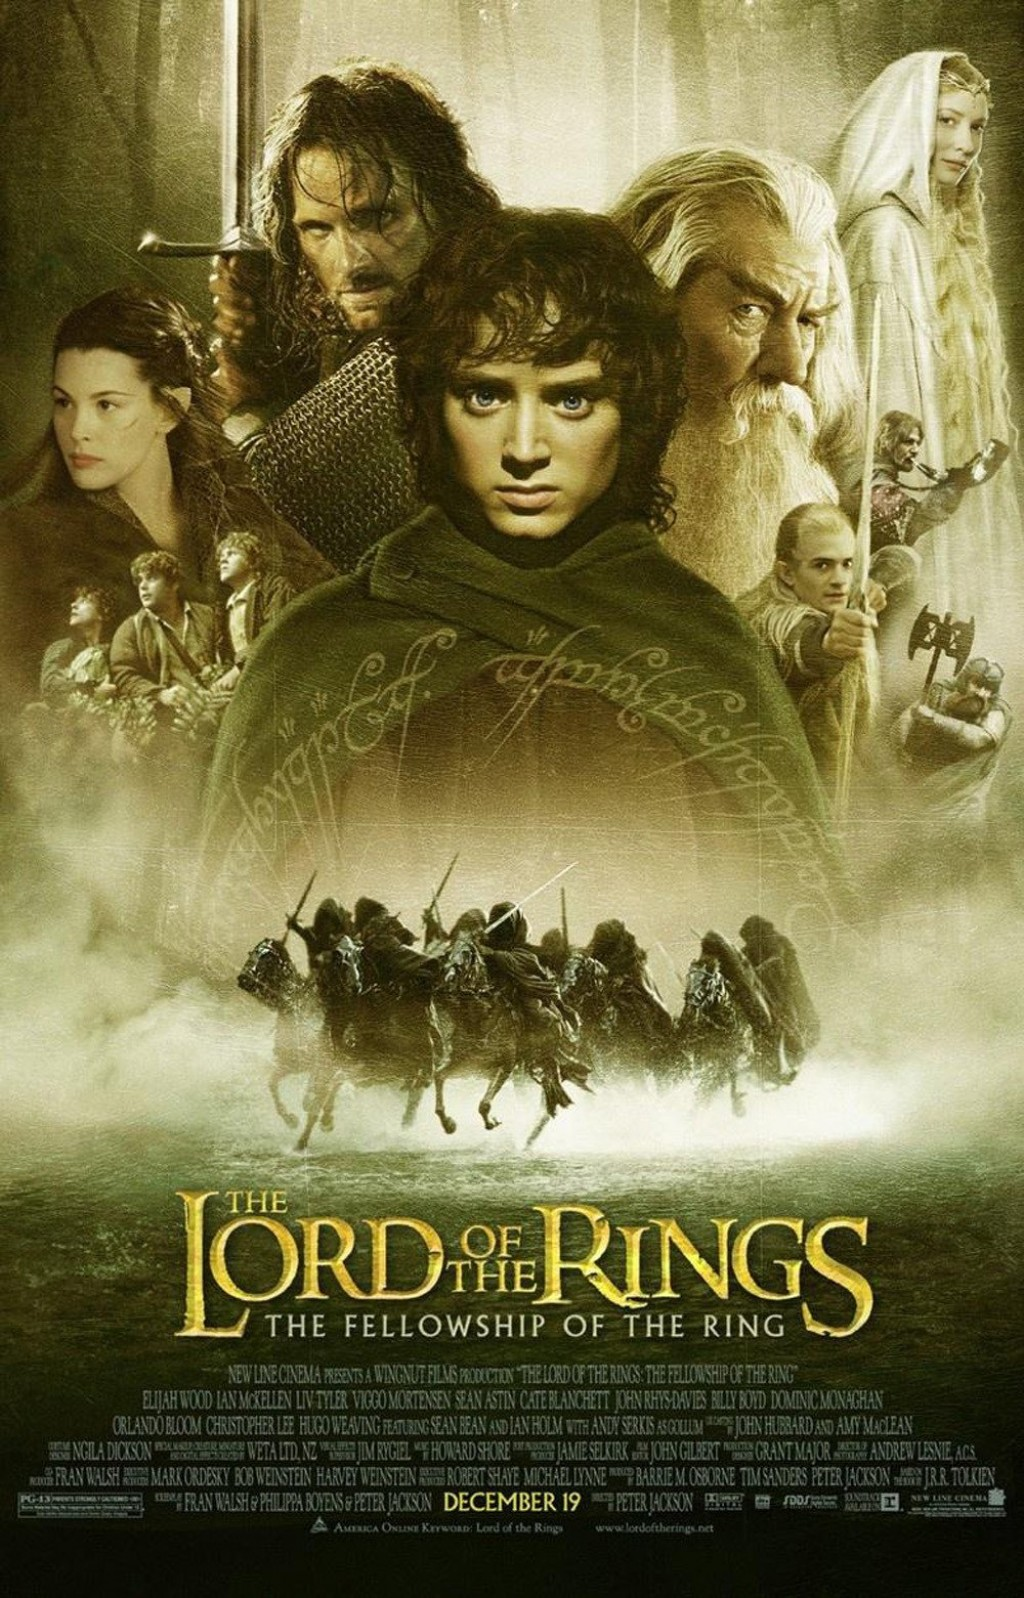 """an evaluation of the movie adaptation of the lord of the rings fellowship of the ring Amazon studios to adapt the lord of the rings for preceding"""" the fellowship of the ring: """"the lord of adaptation will explore new storylines."""